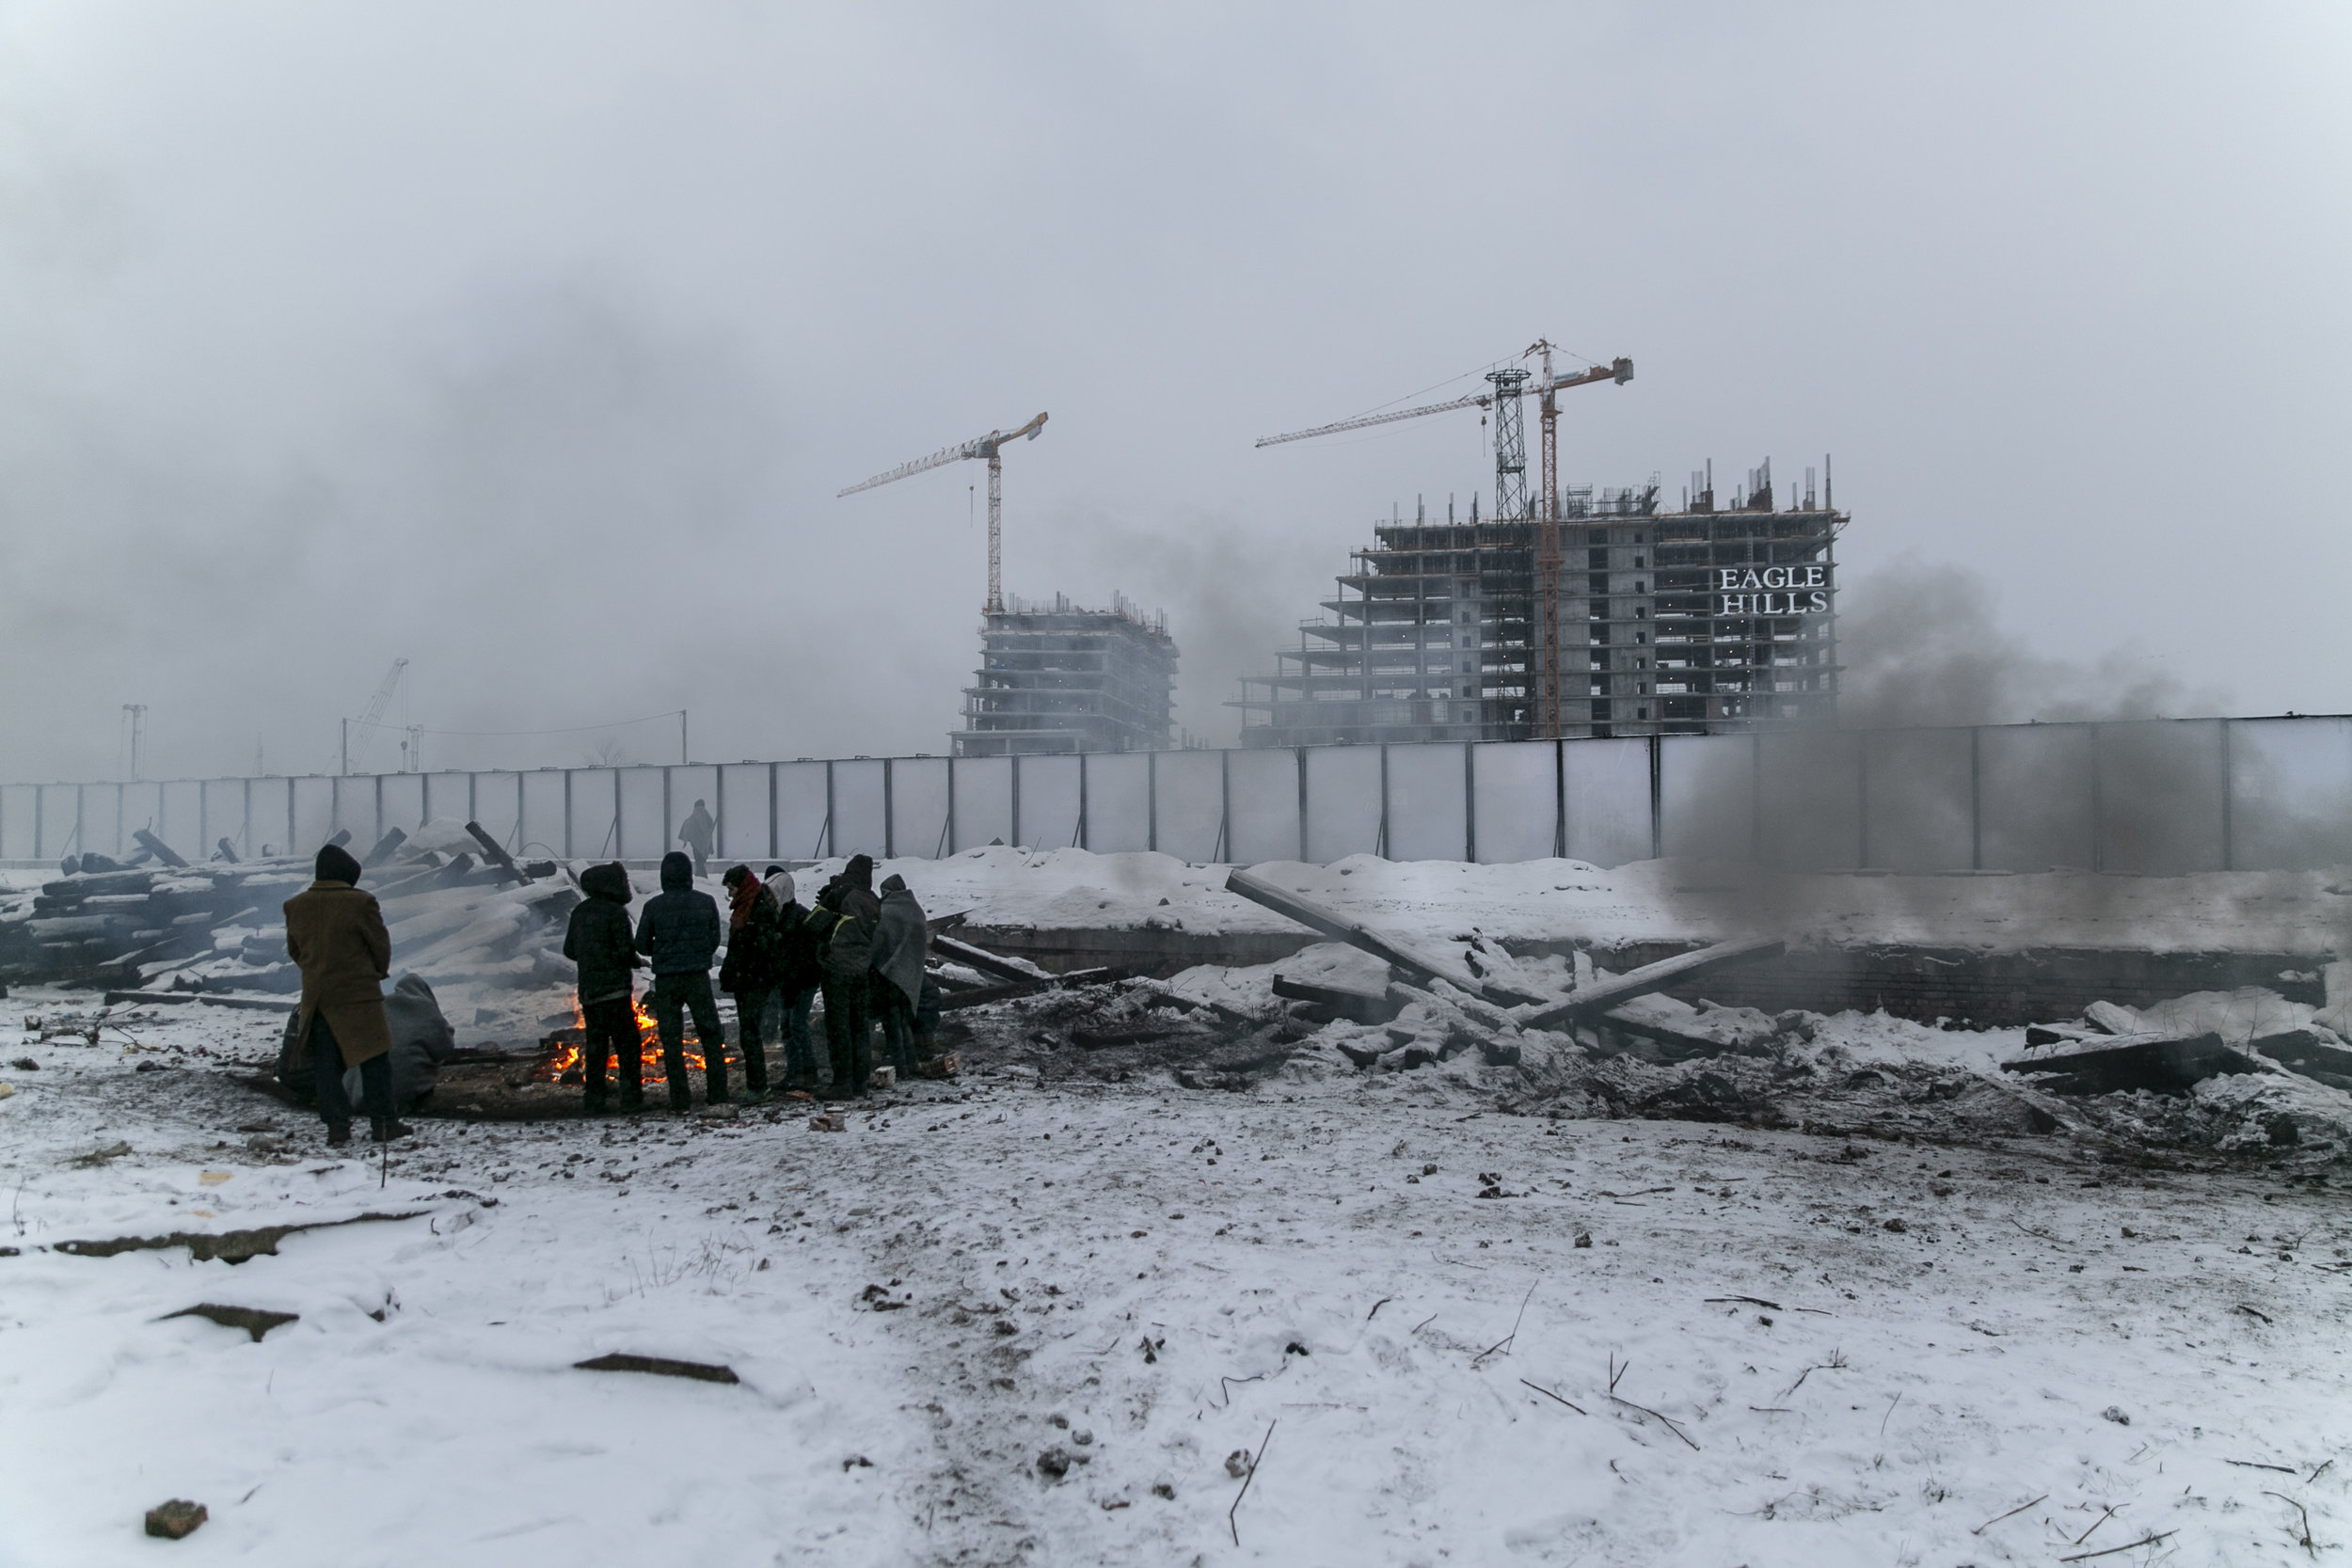 Refugees from Afghanistan and Pakistan warm themselves by a fire made from chemically treated railroad wood on Jan. 10, 2017 in Belgrade, Serbia. Across the fence, a private Abu Dhabi-based real estate company, Eagle Hills, constructs luxury apartments as part of the 4-billion-dollar Belgrade Waterfront project.